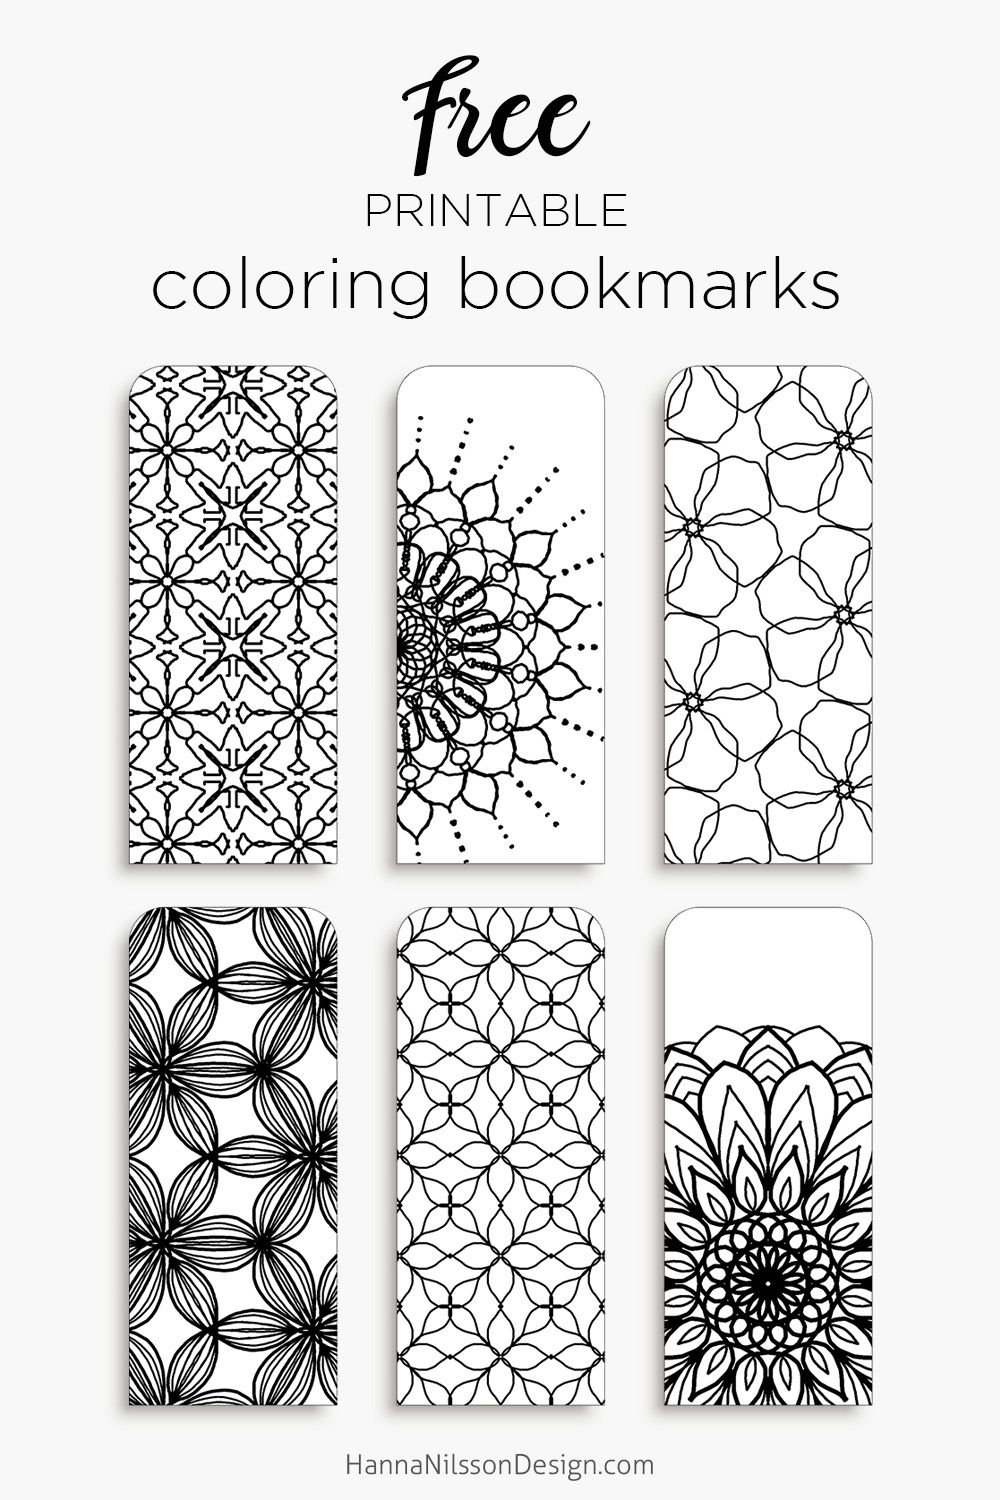 color your own bookmarks free printable bookmarks for coloring just download and print - Color For Free